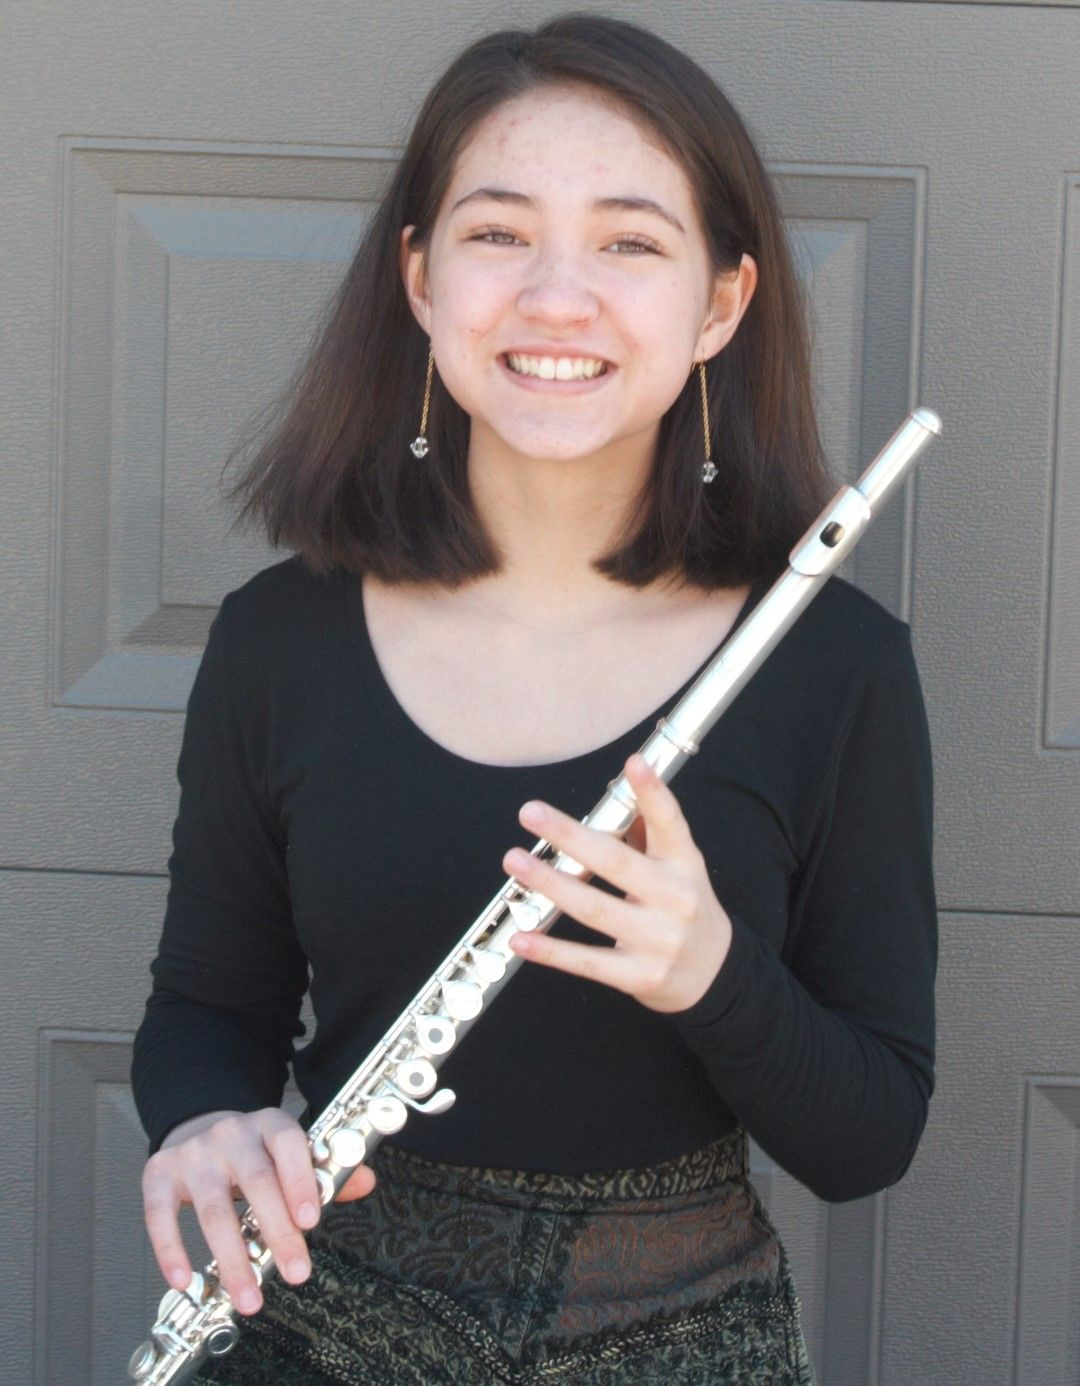 Congratulations to Corvina Graham, Conservatory Orchestra Concerto Competition Winner